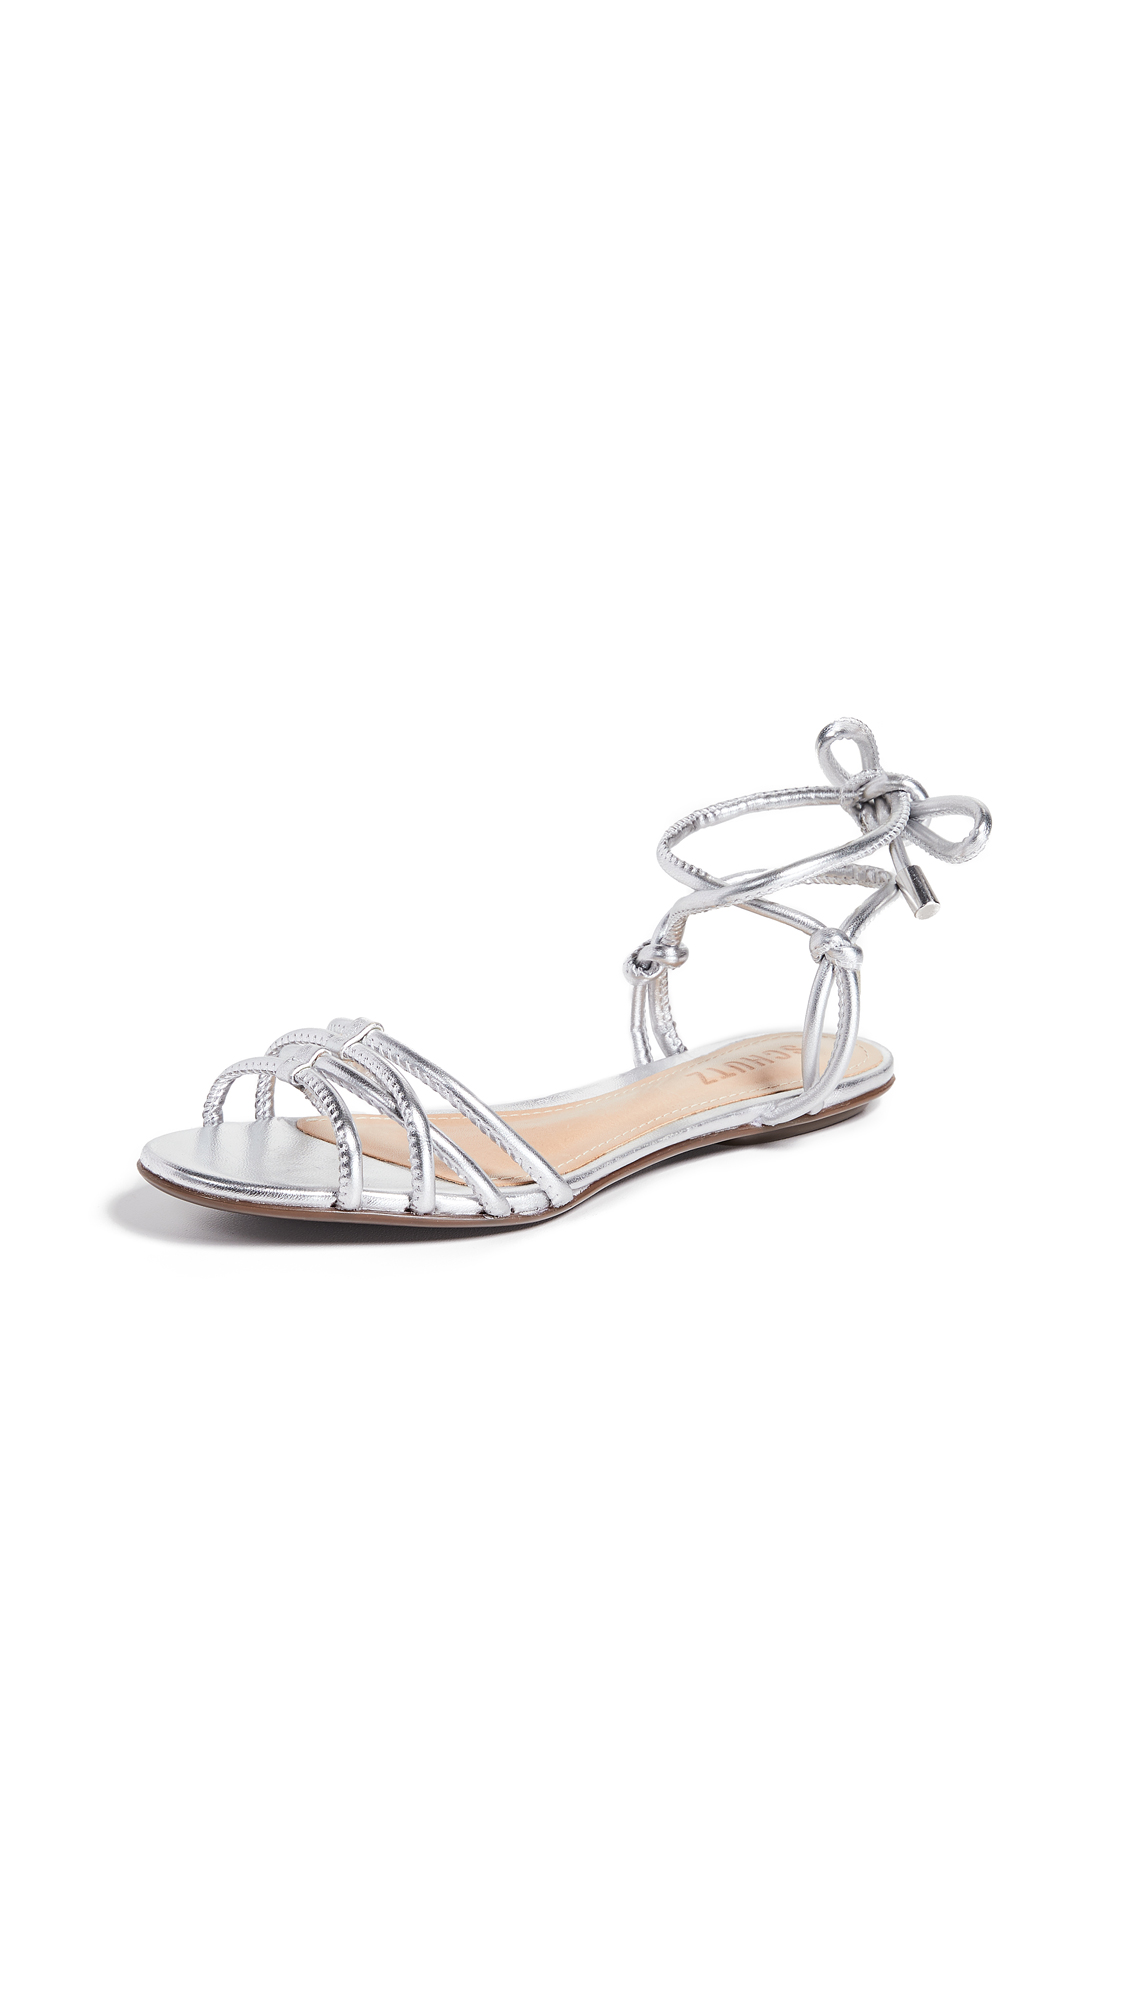 Schutz Eugenie Strappy Sandals - Prata